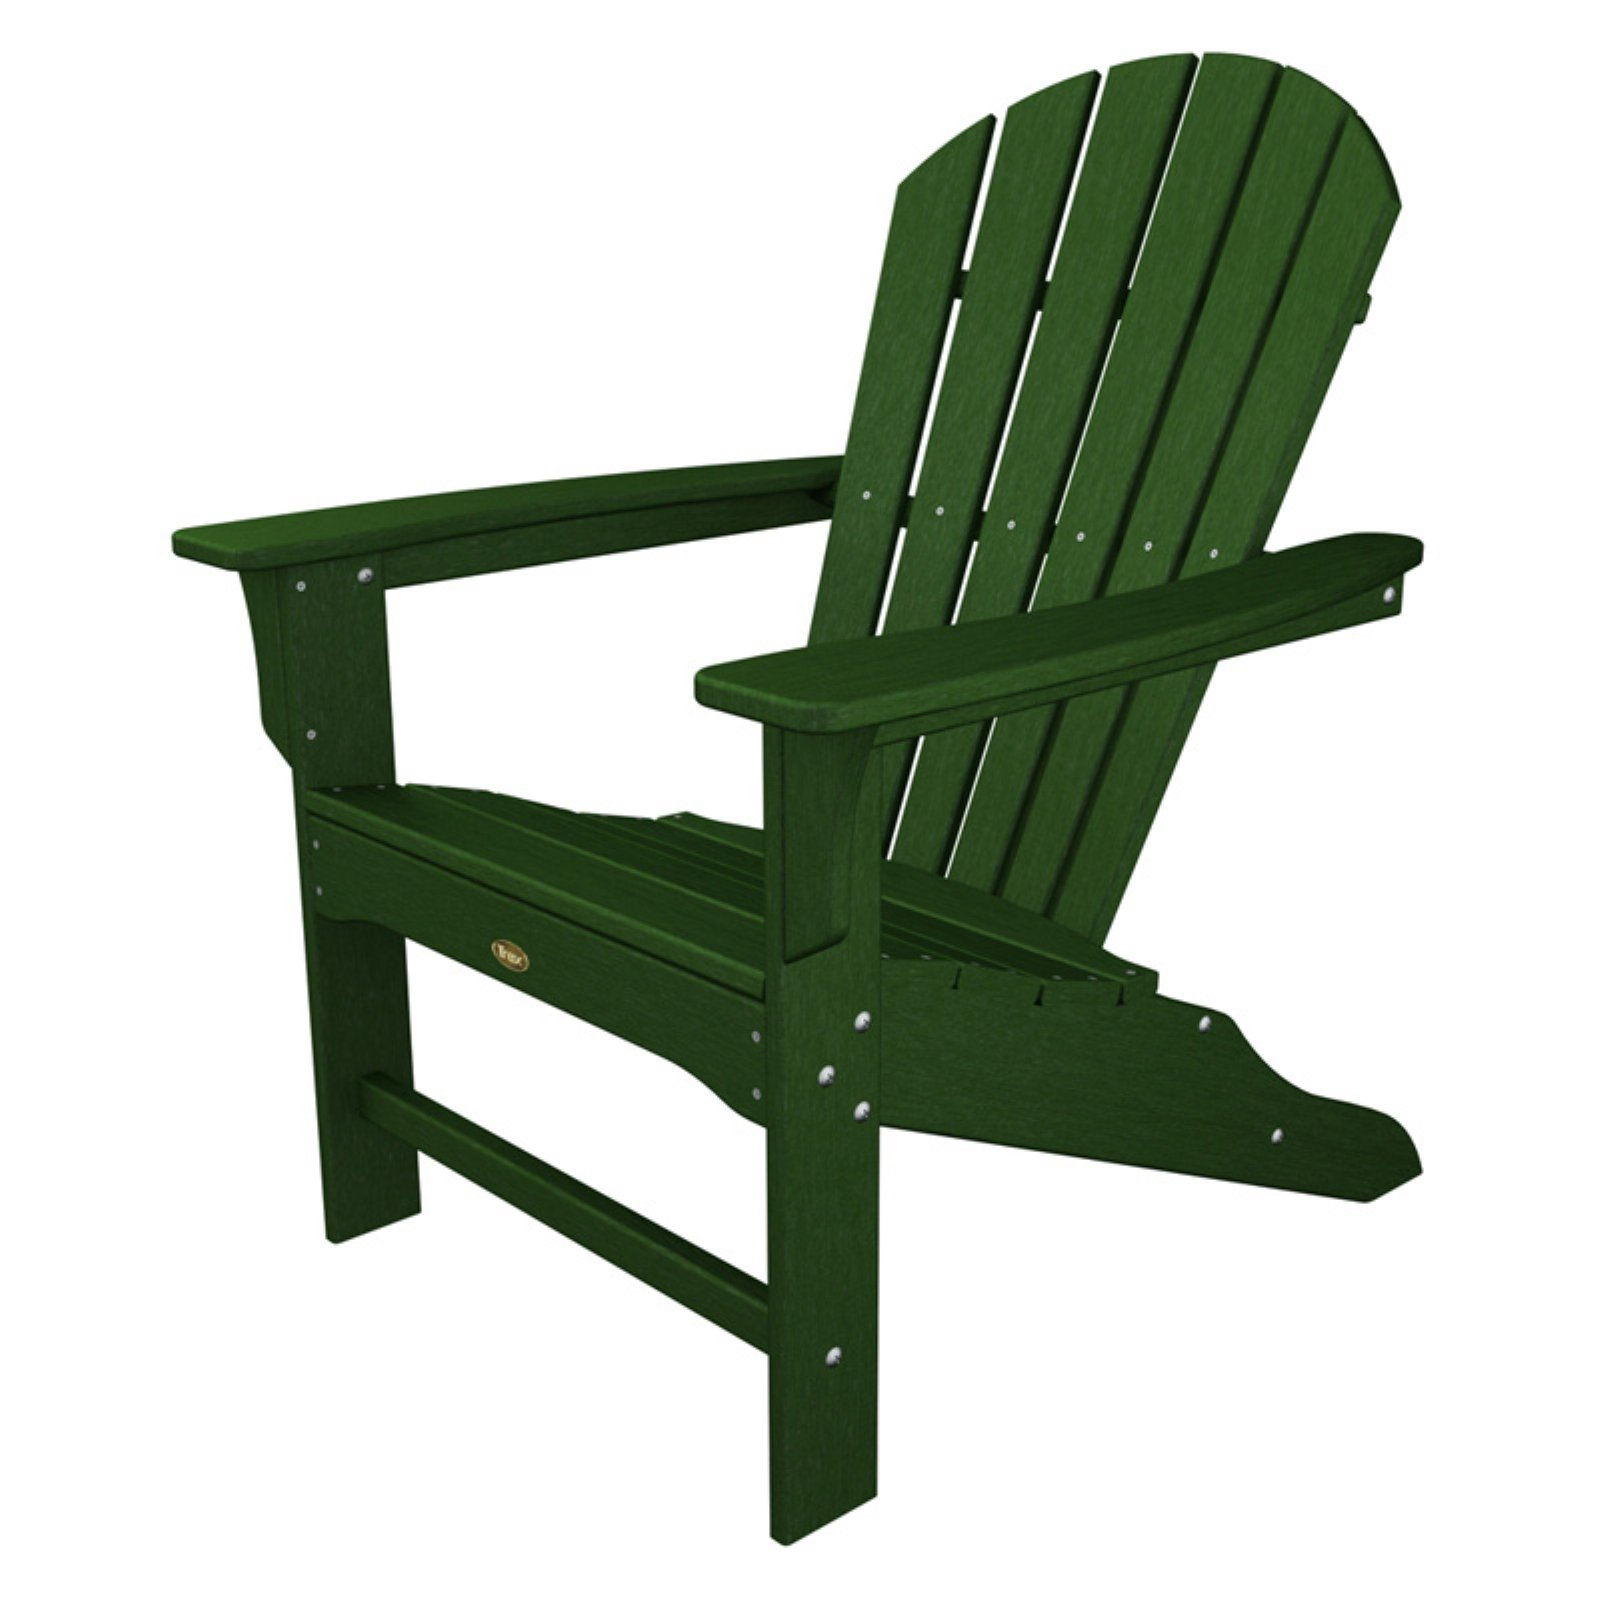 Trex Outdoor Furniture Recycled Plastic Cape Cod Adirondack Chair by Adirondack Furniture